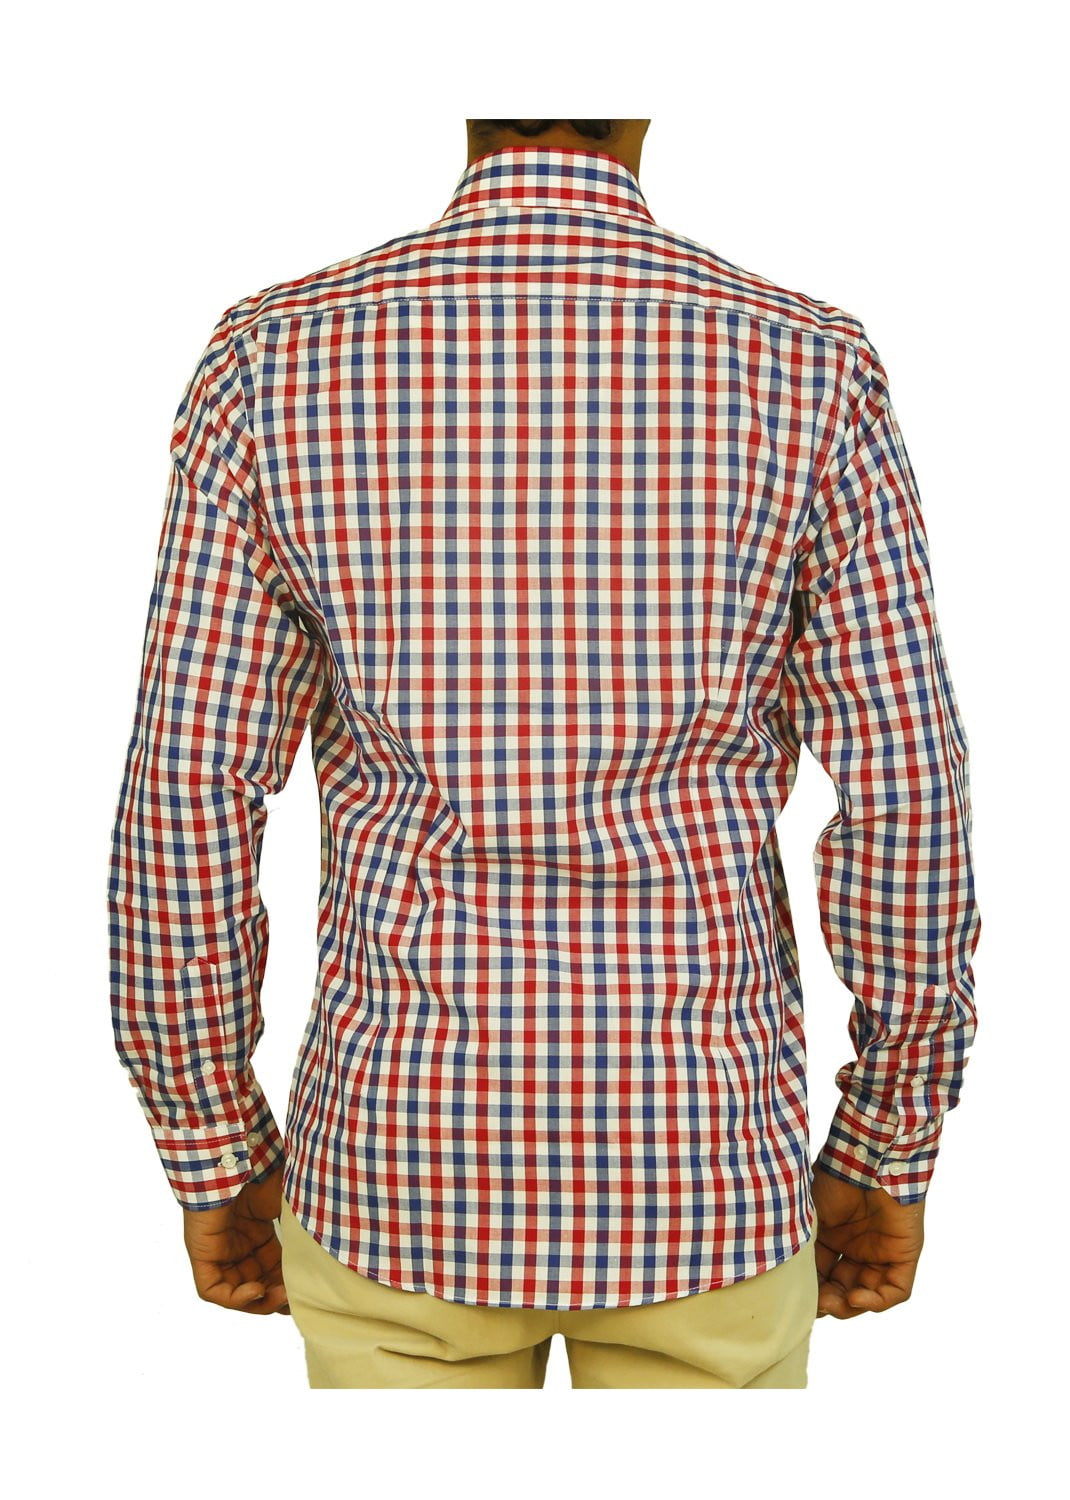 Almanac Multi Checked Shirt - Buythevalue.in